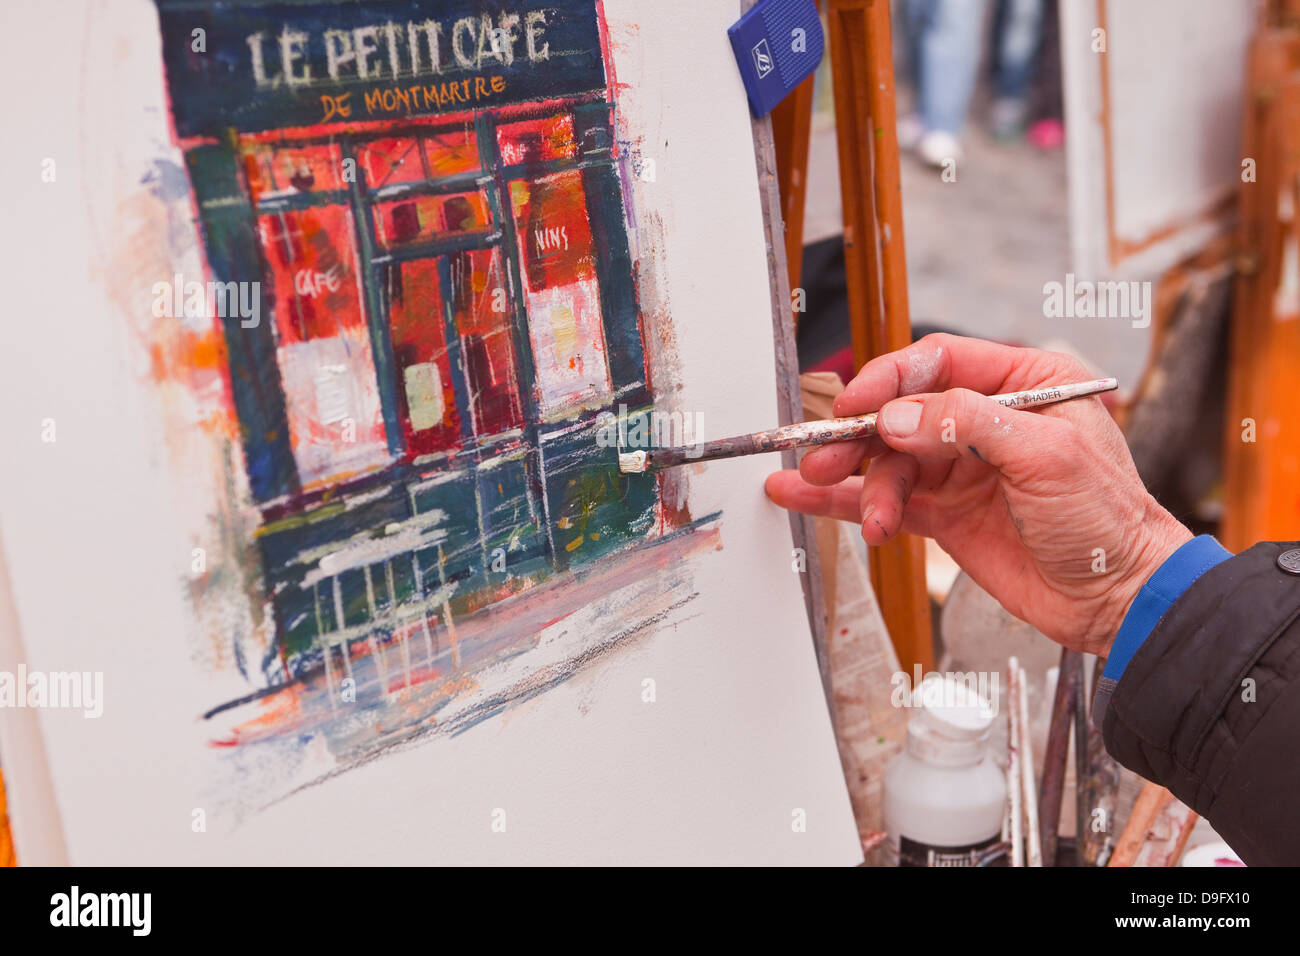 A street artist at work in the famous Place du Tertre in Montmartre, Paris, France Stock Photo